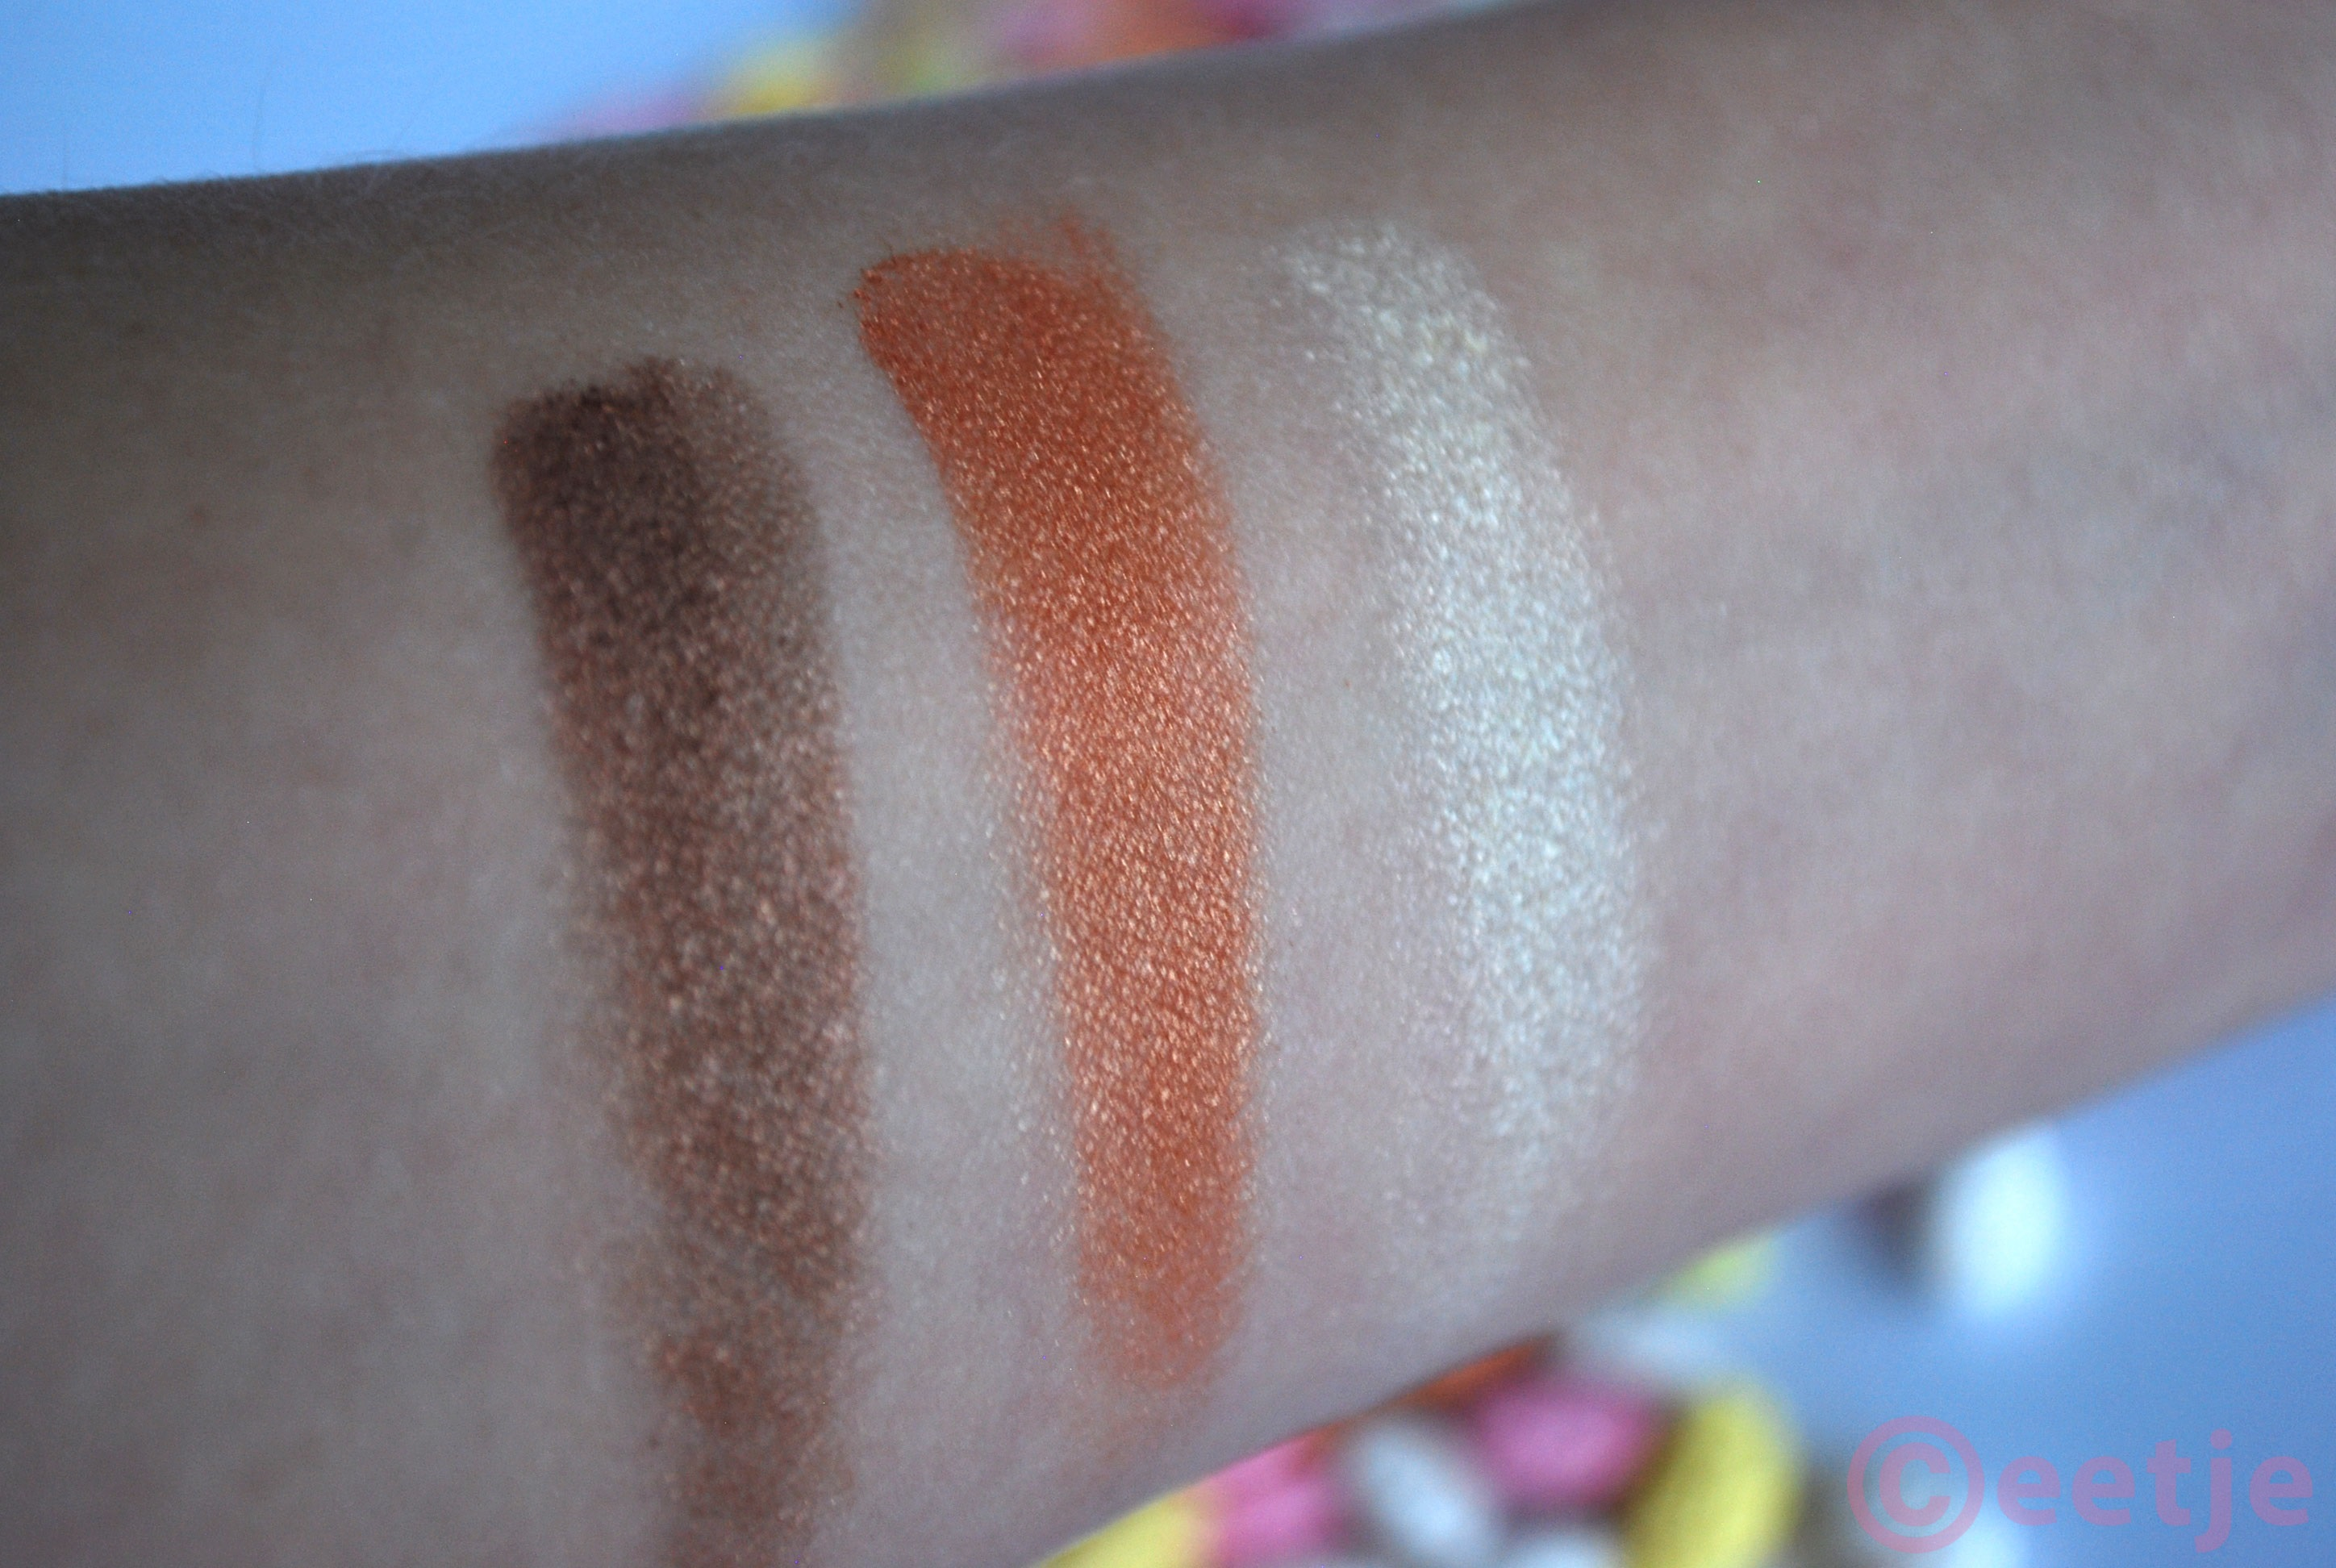 Swatches-Lioele-Dollish eyeshadow-08-bronze brown triple